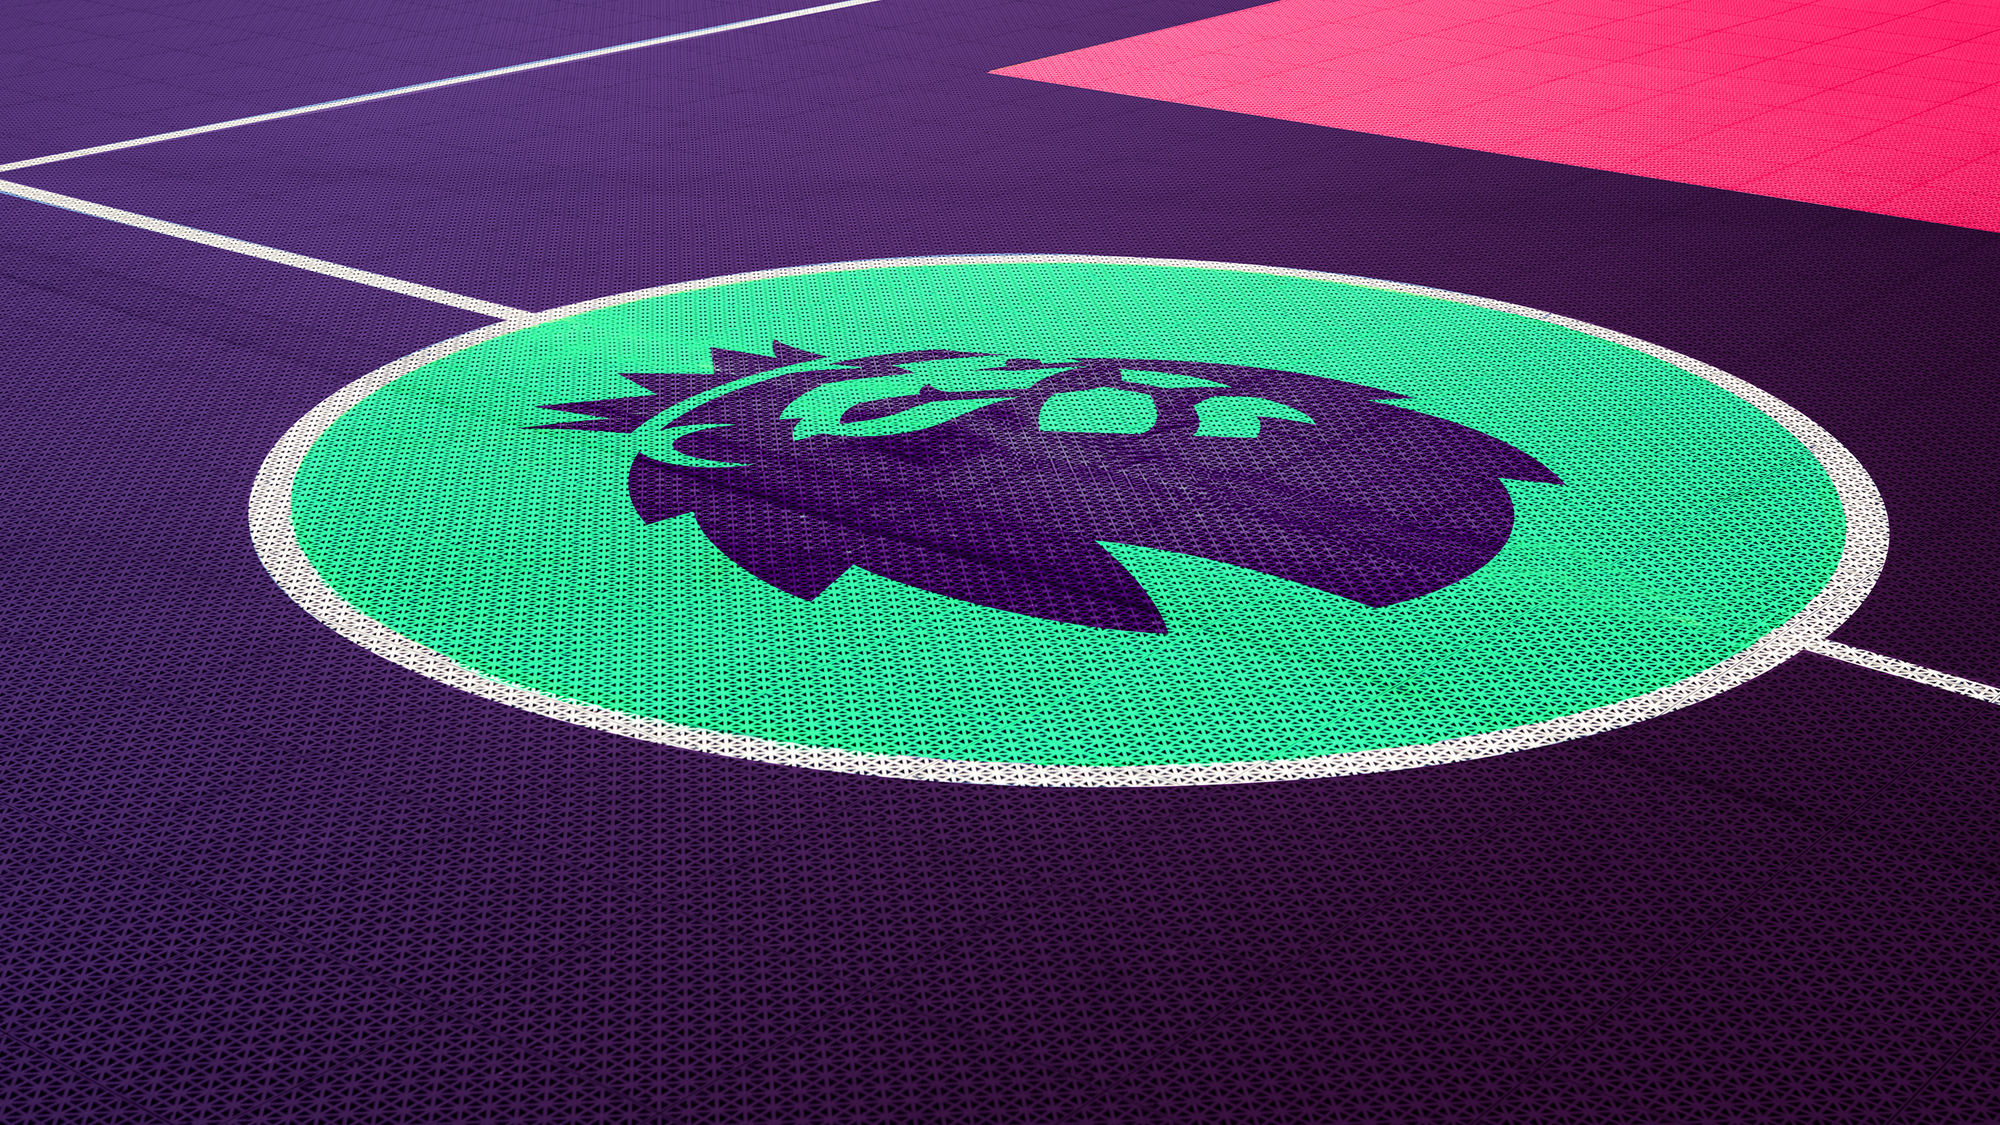 premier league logo on the floor